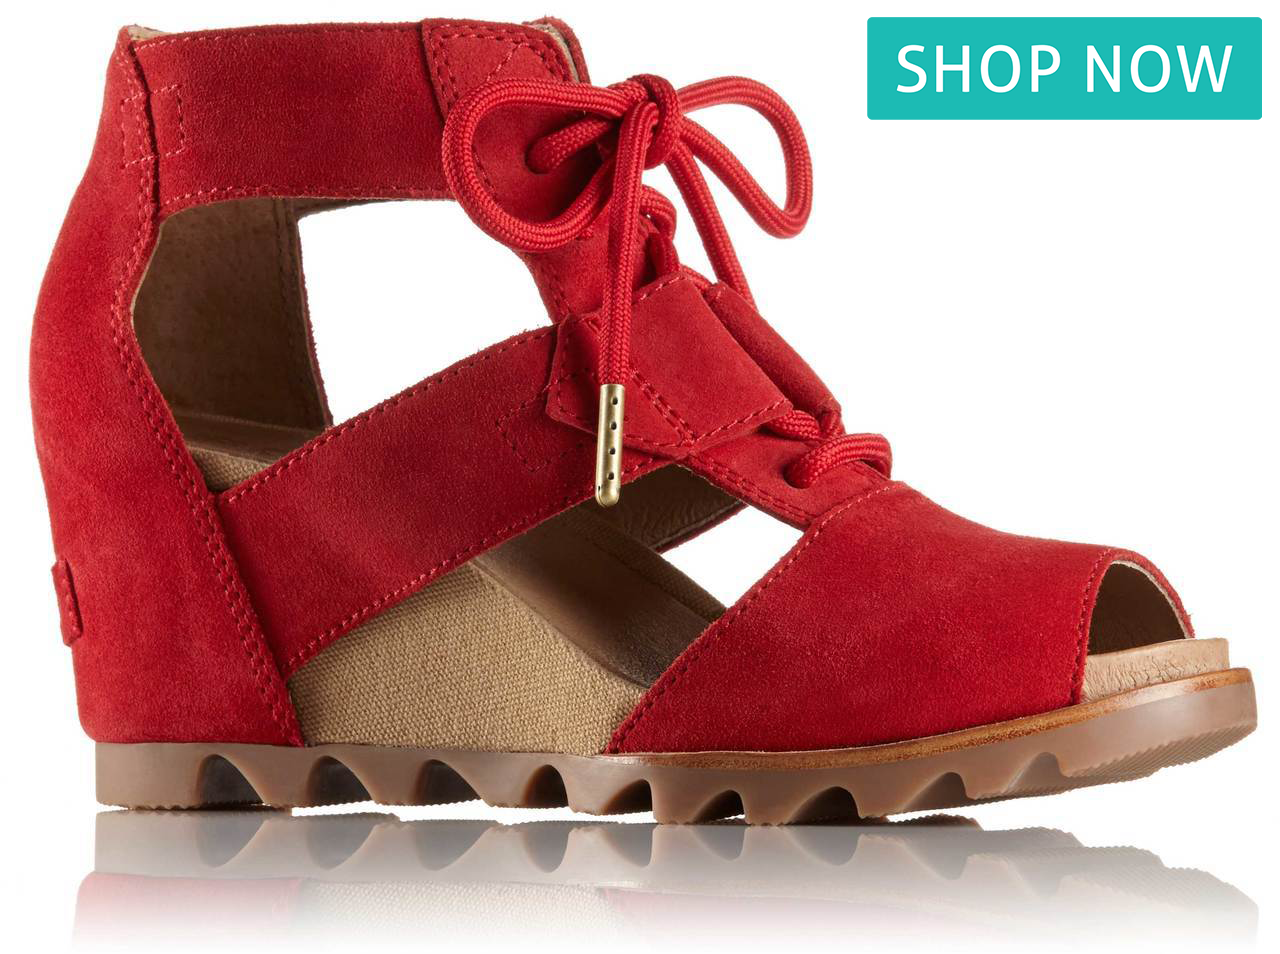 Sorel Joanie Lace in Bright Red